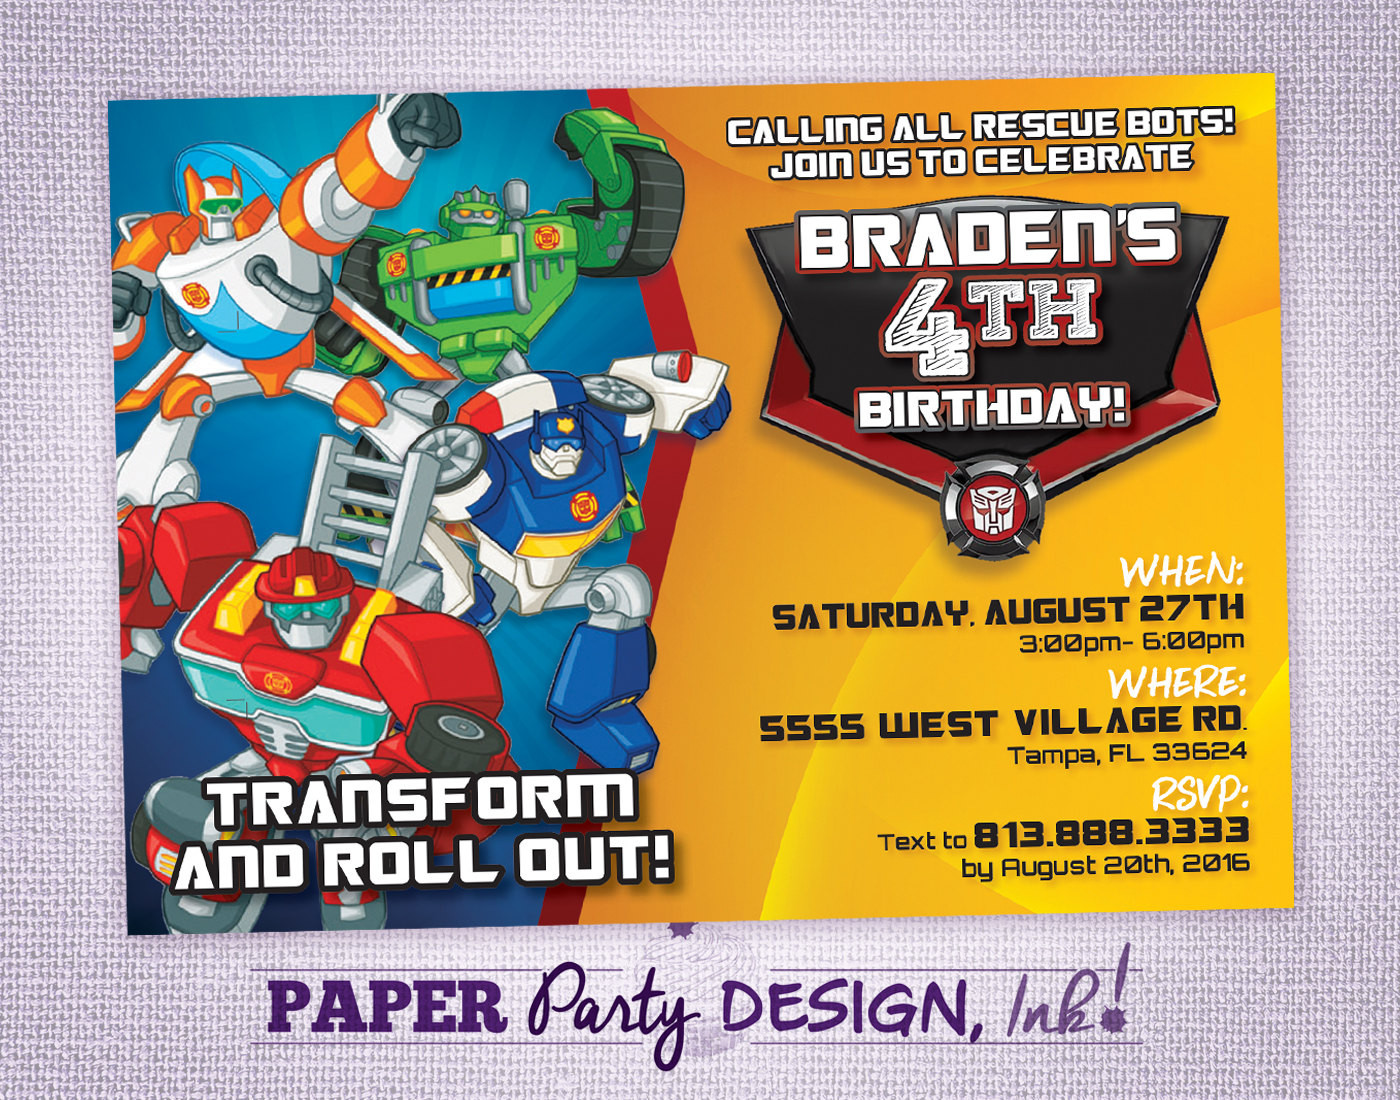 Best ideas about Rescue Bots Birthday Party . Save or Pin Rescue Bots Birthday Party Invitation Rescue Bots Party Now.